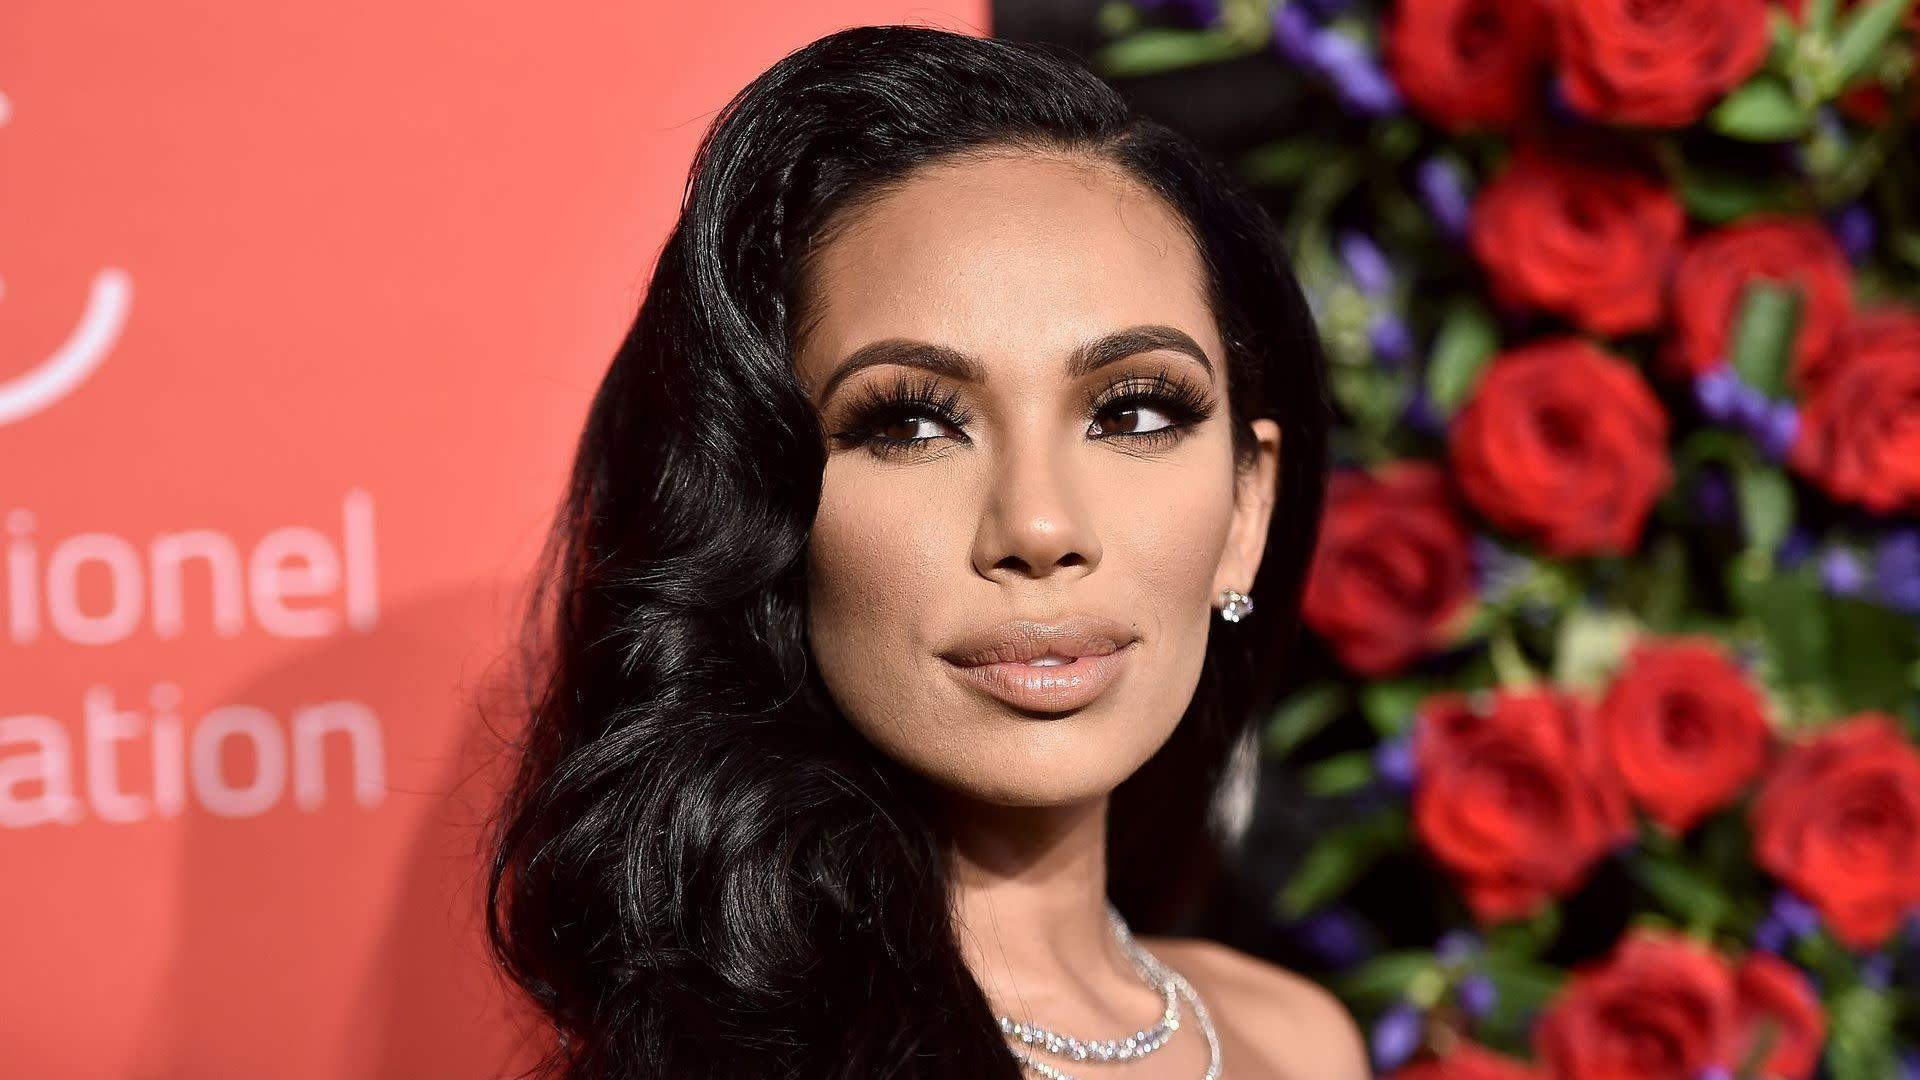 Erica Mena Calls Out Safaree for Saying Getting Married Was '1 of My Biggest Mistakes' - Yahoo Entertainment